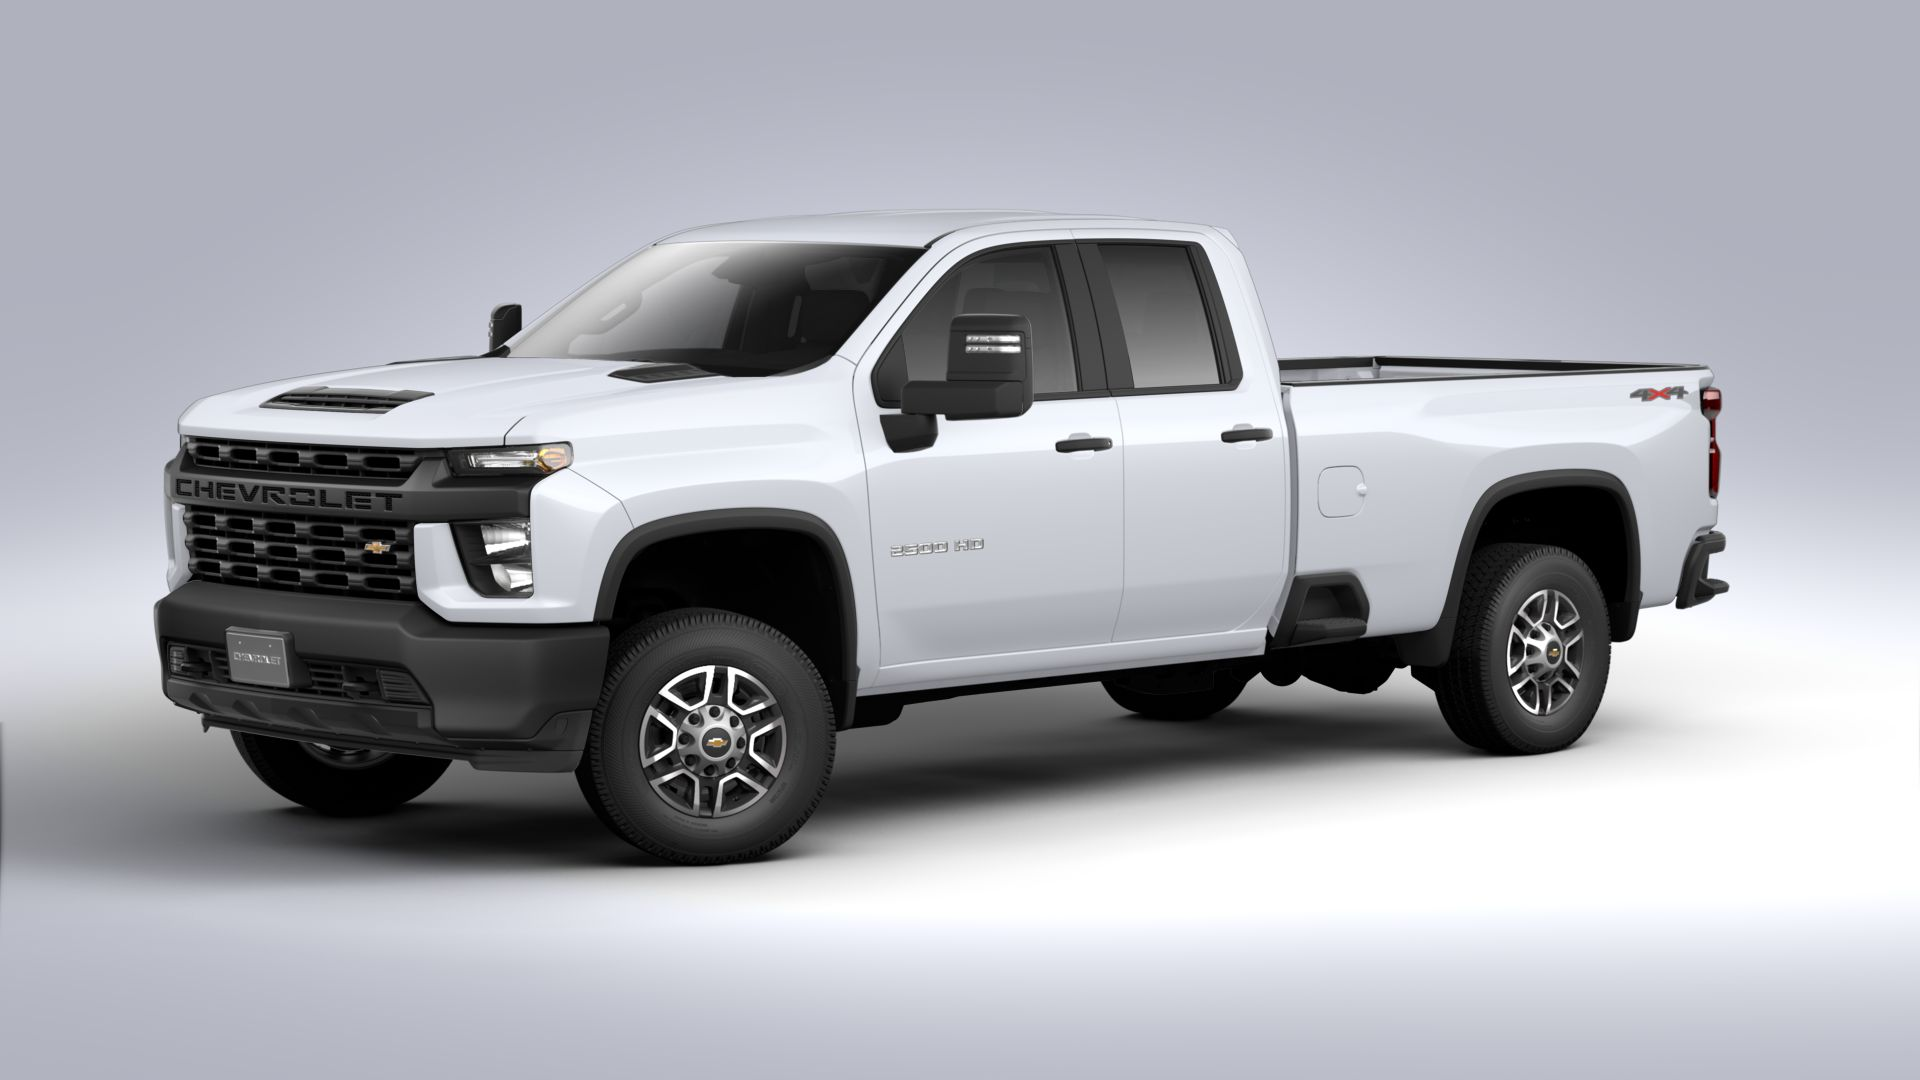 New 2020 Chevrolet Silverado 2500 HD WT FOUR WHEEL DRIVE Double Cab